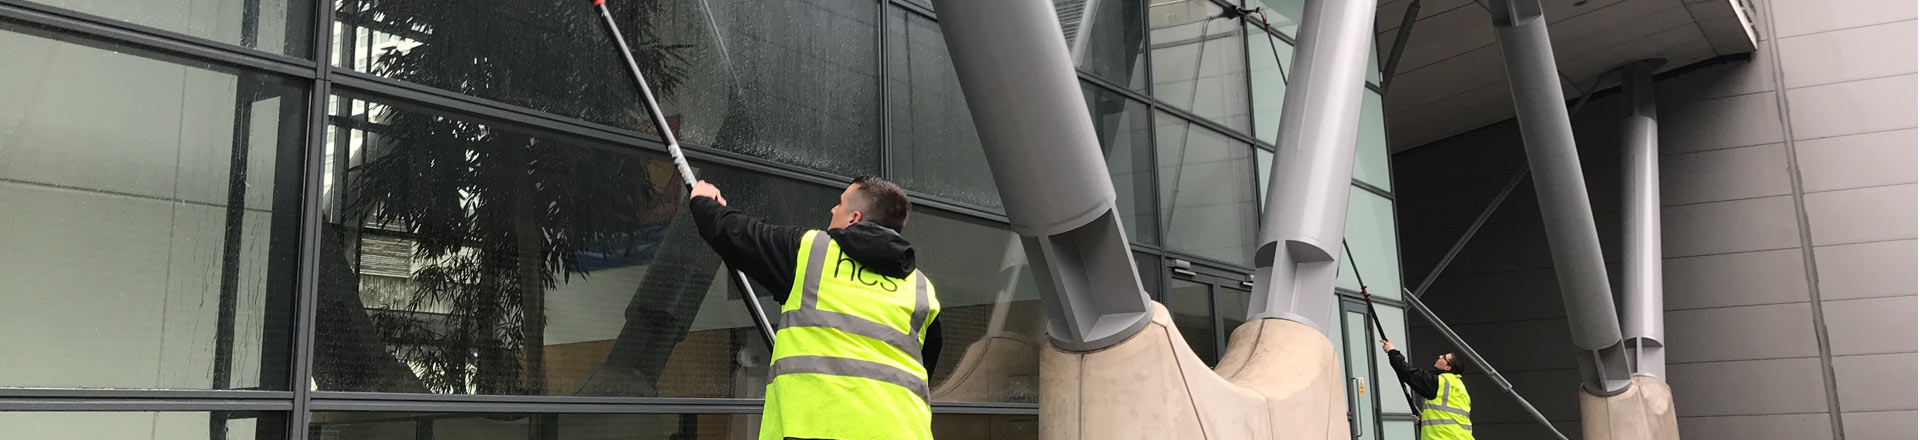 Window Cleaning Services in Manchester and the North West - HCS Cleaning Services